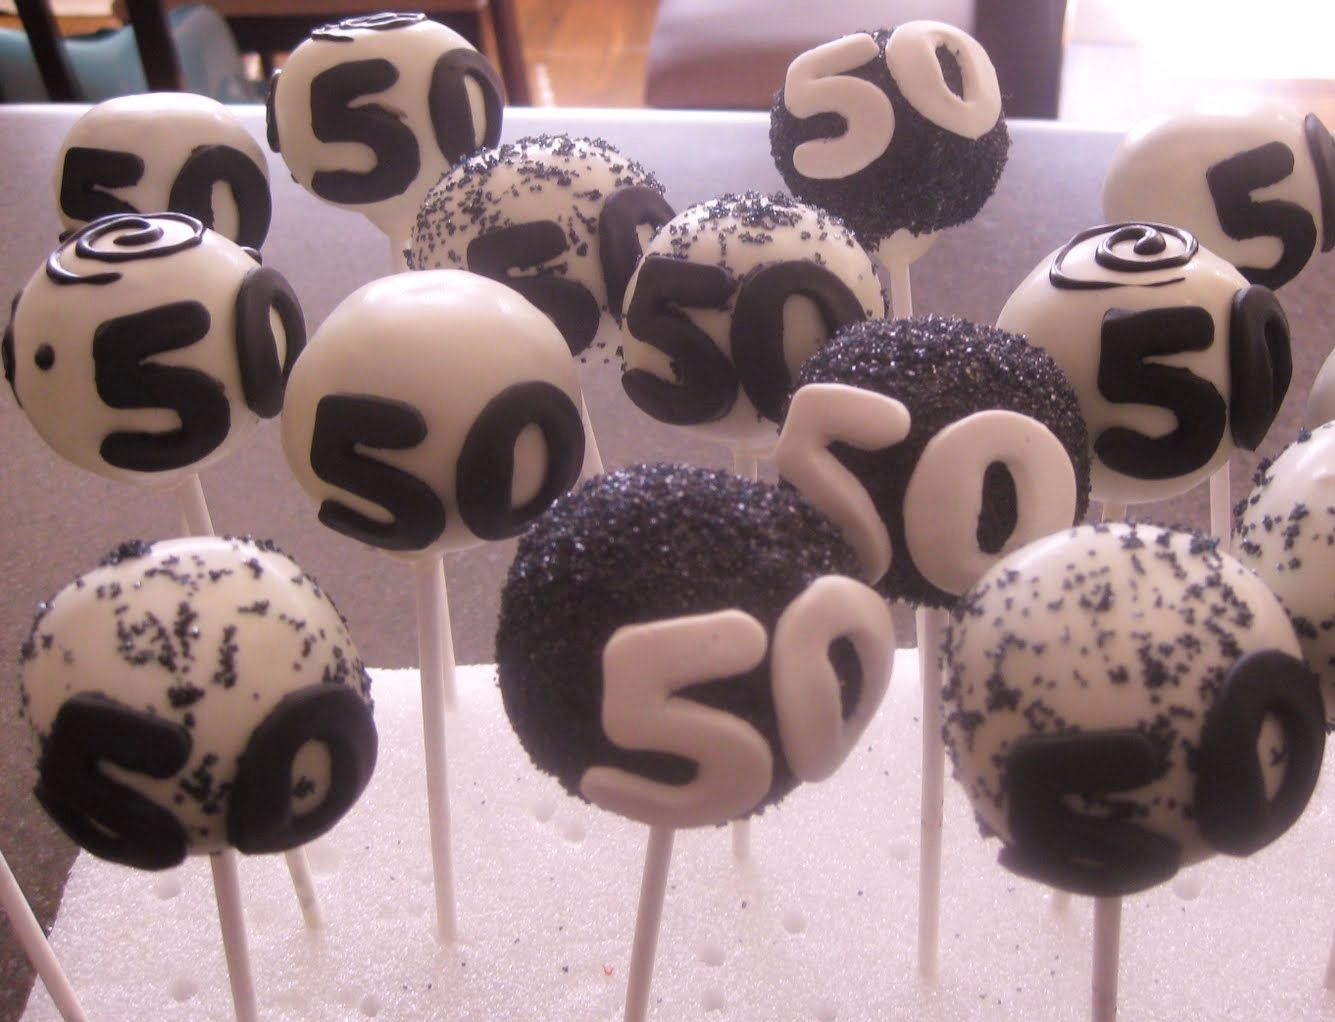 Awe Inspiring Cake Pops 50Th Birthday Black And White Available White Or Funny Birthday Cards Online Inifodamsfinfo